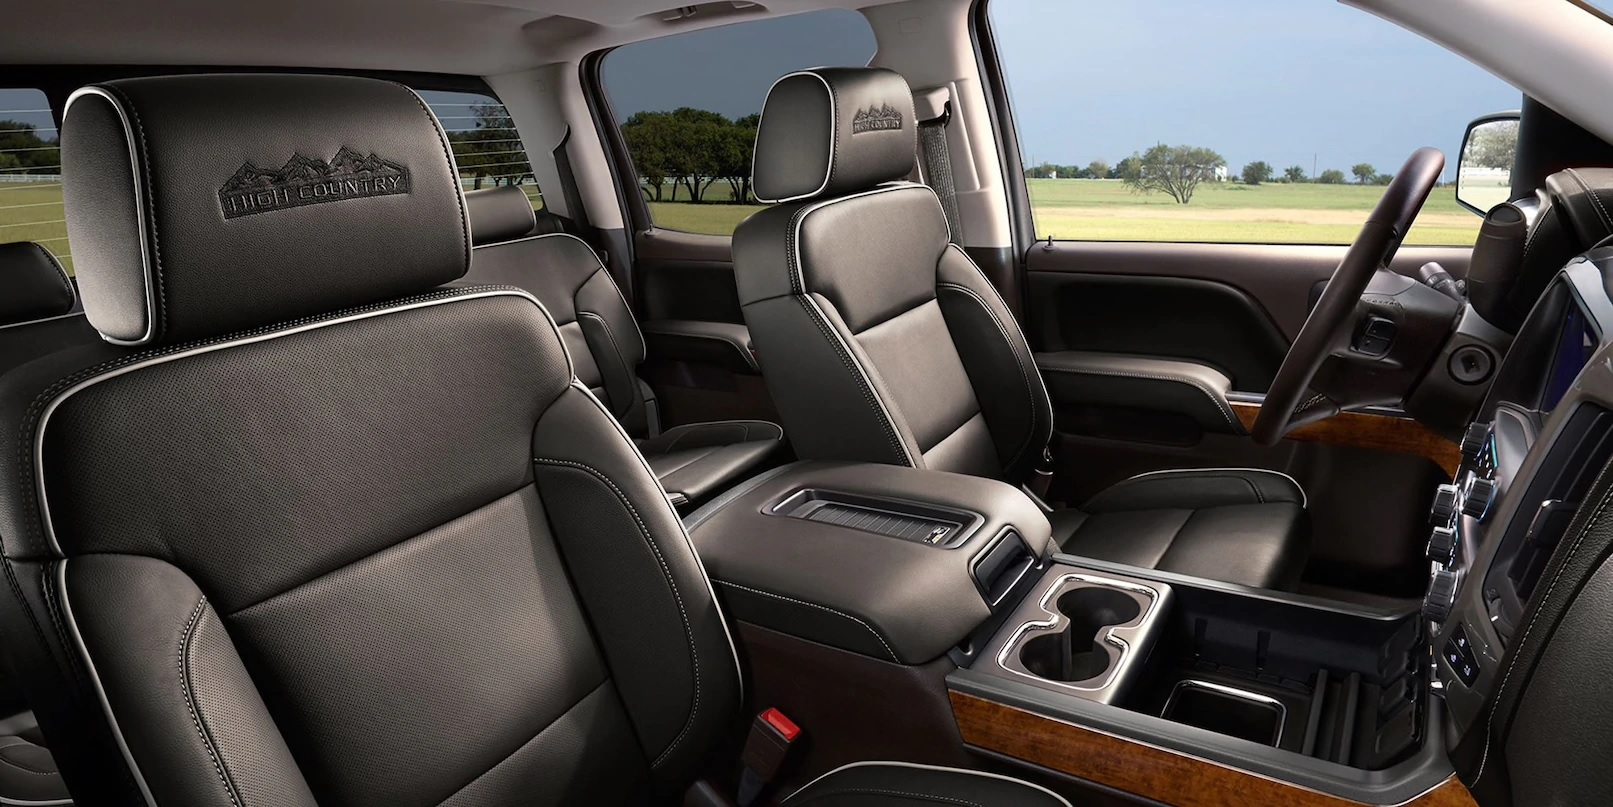 Enjoy Optimum Comfort During Any Drive in the Silverado 2500HD!